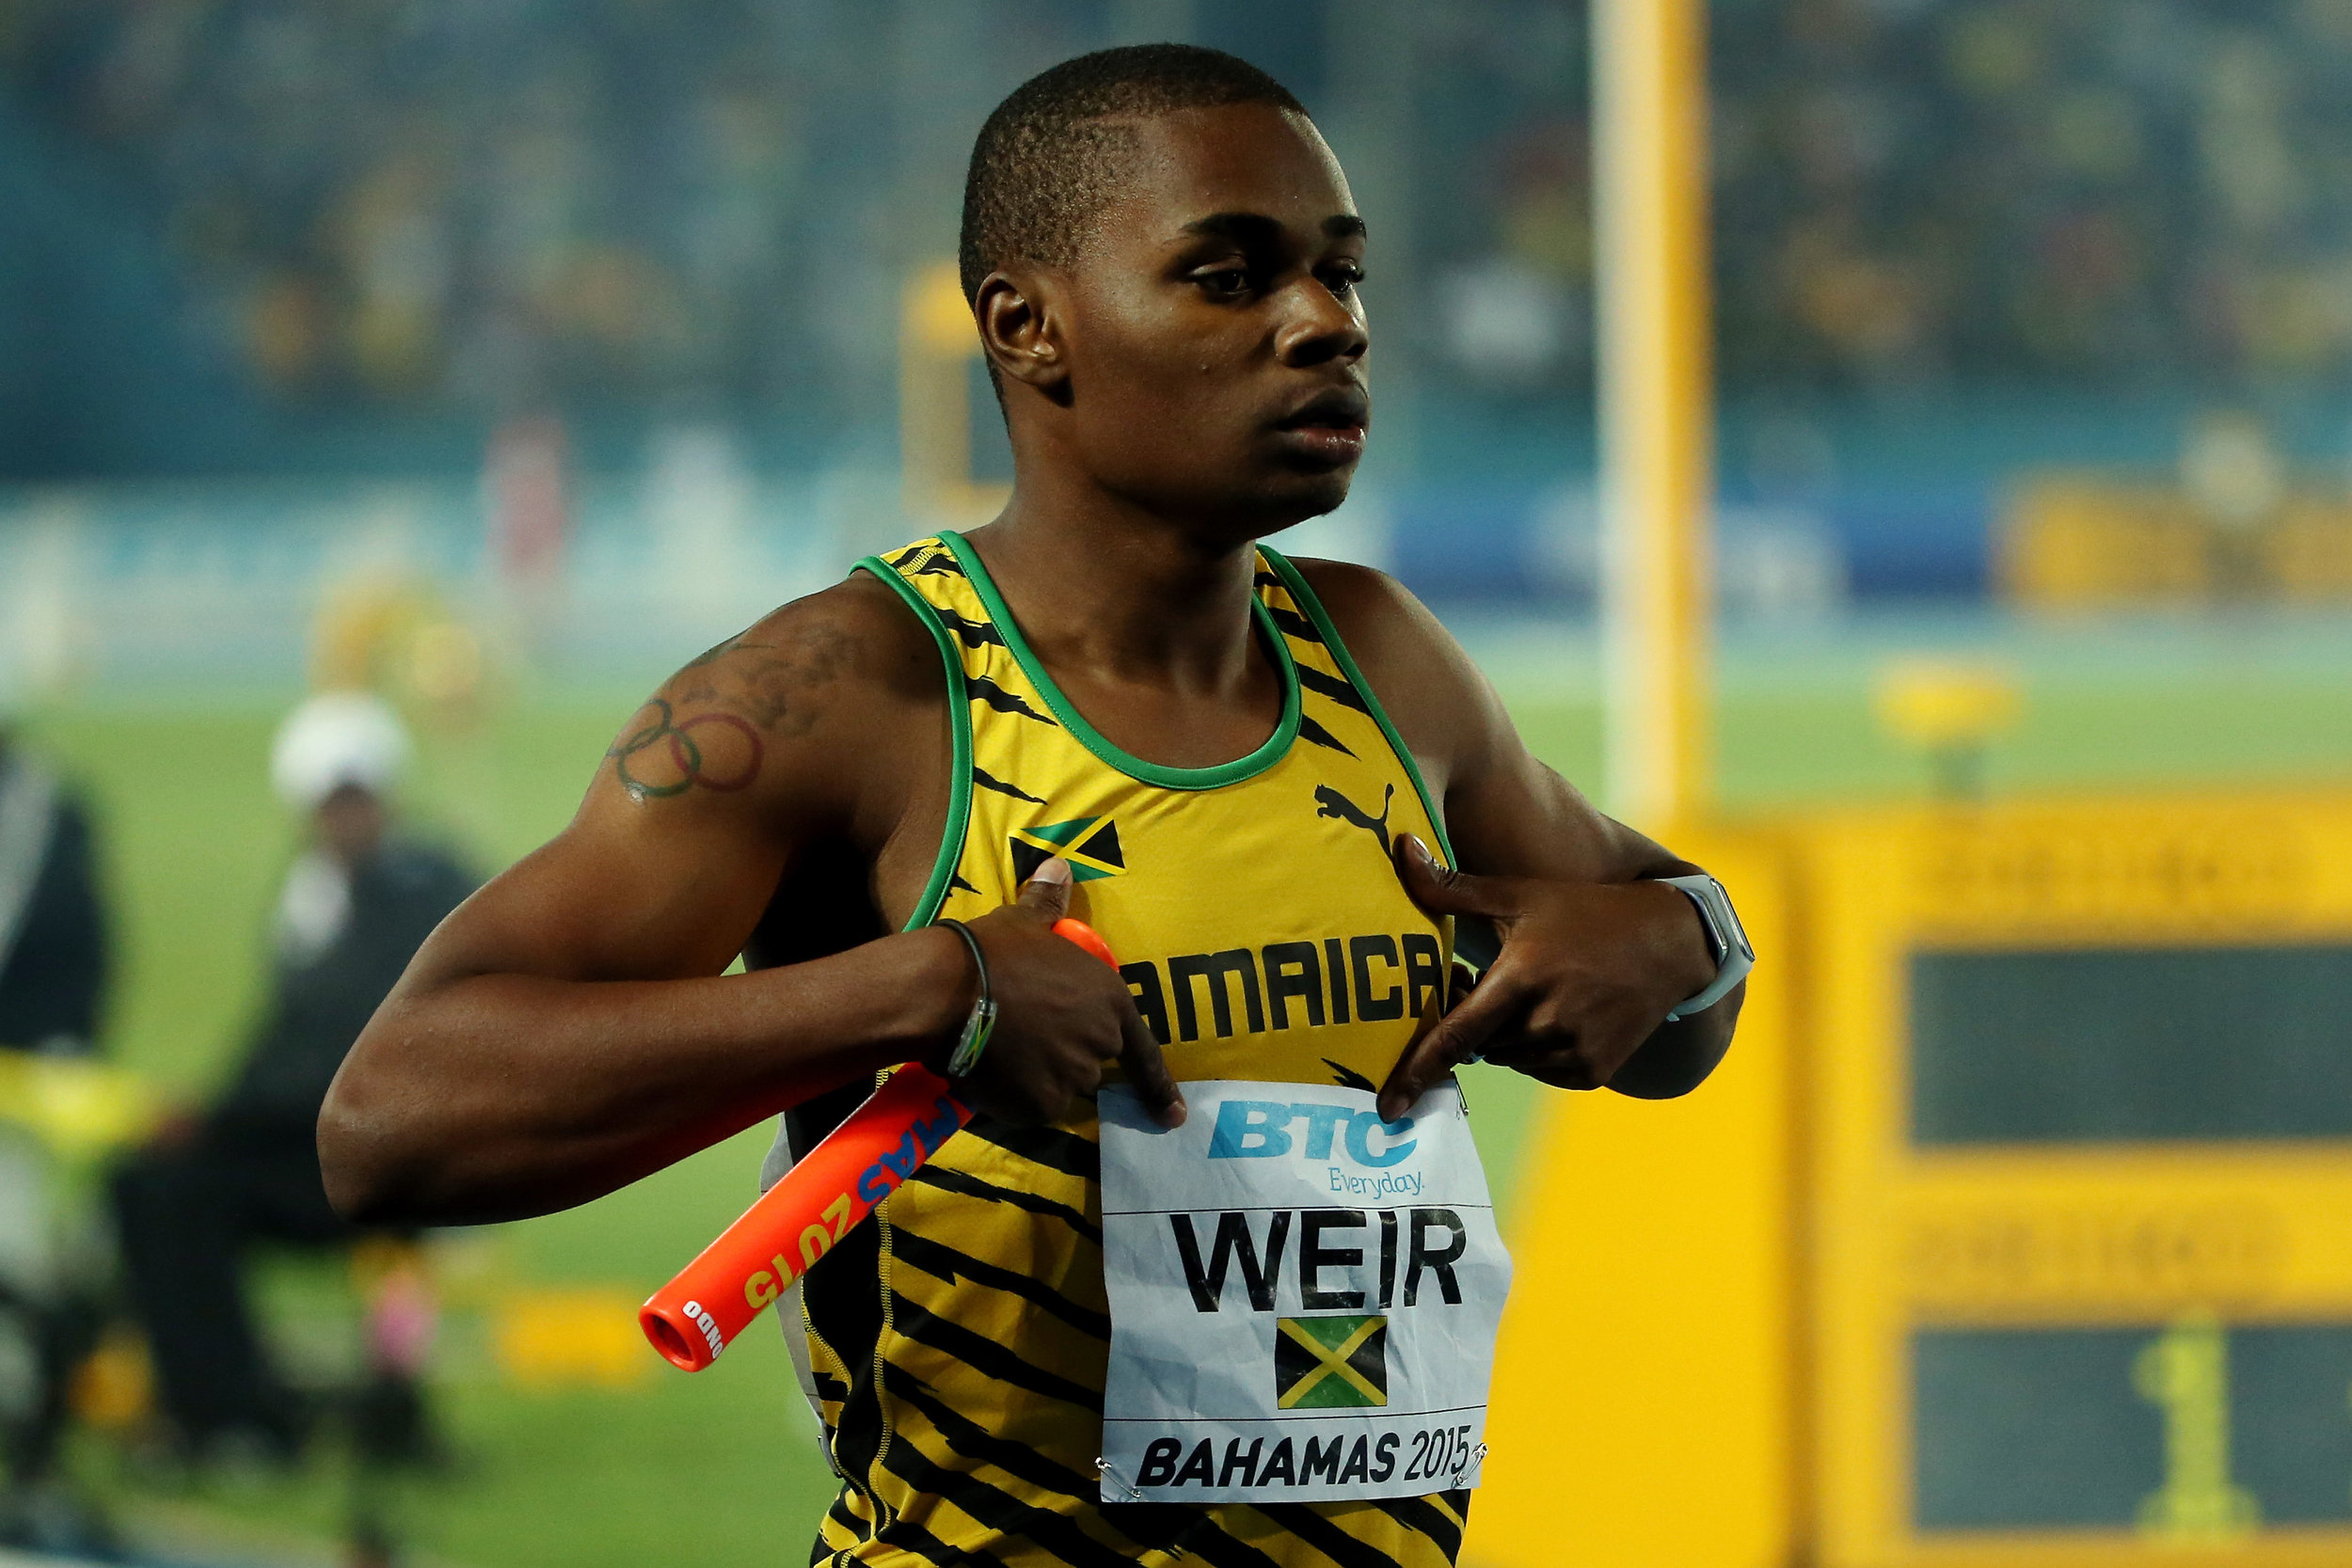 Warren Weir after the winning 4x2 // photo Getty Images and IAAF